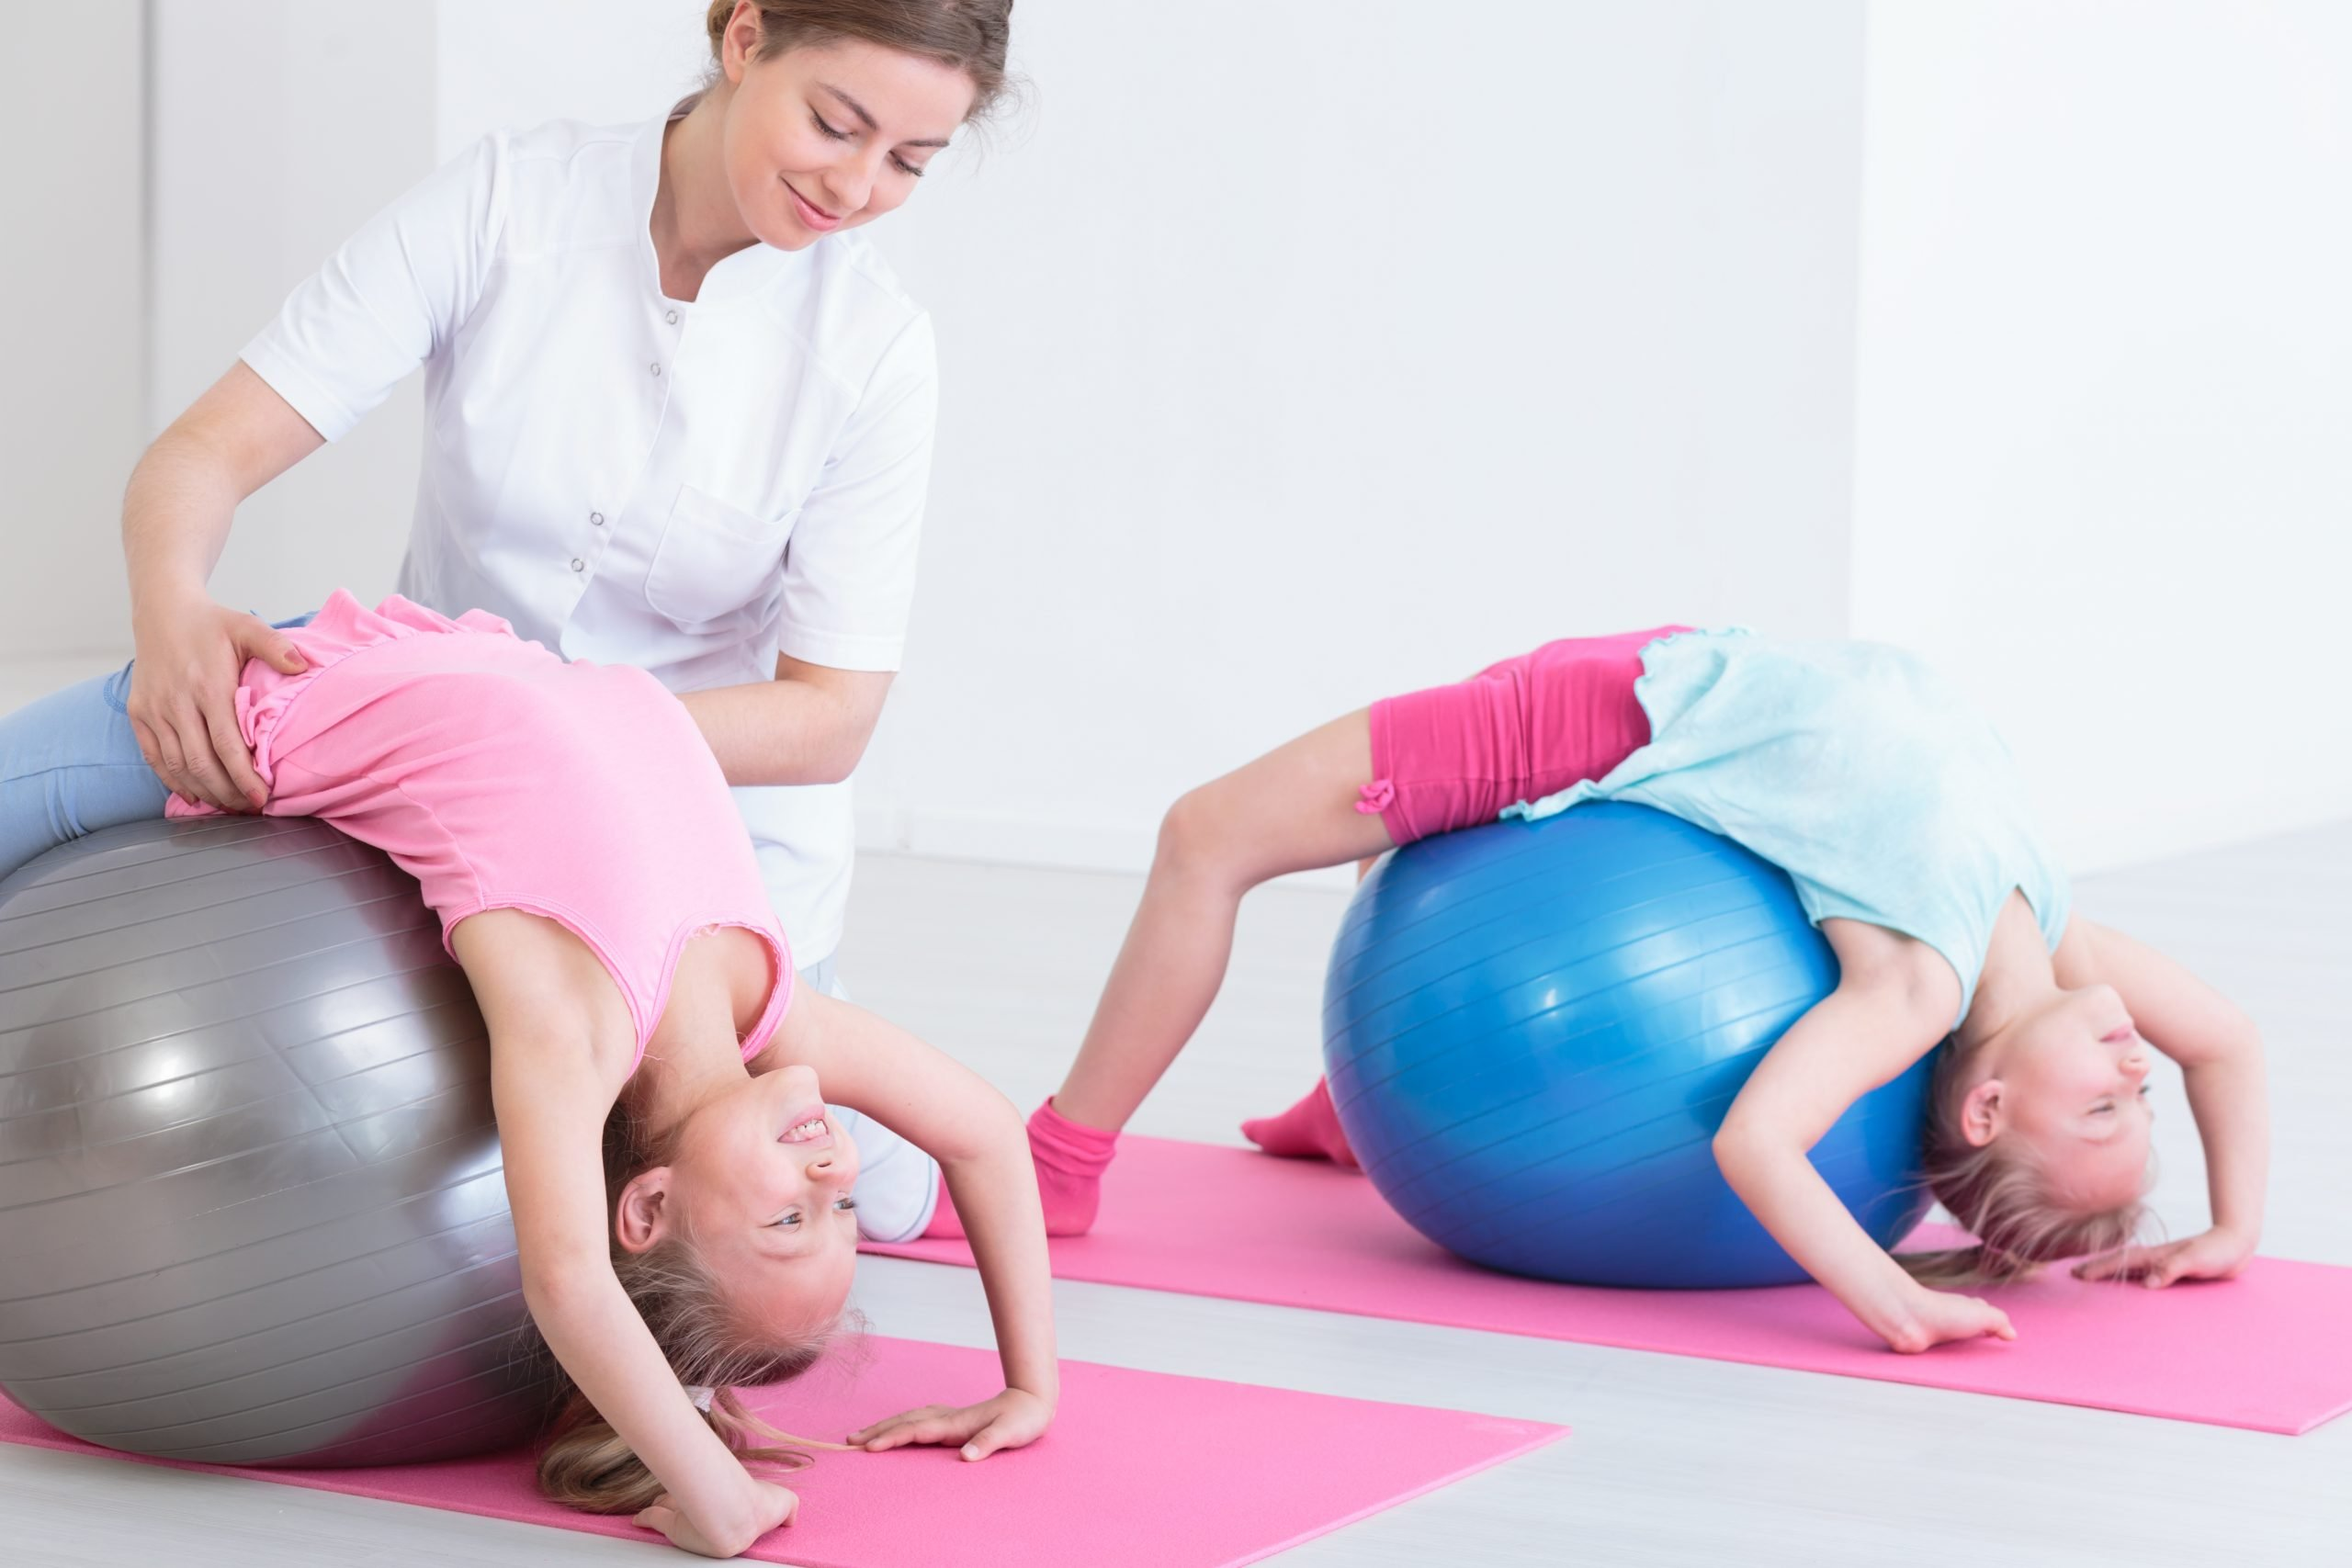 Pediatric Physical Therapy In White Plains - Fit Physical Therapy